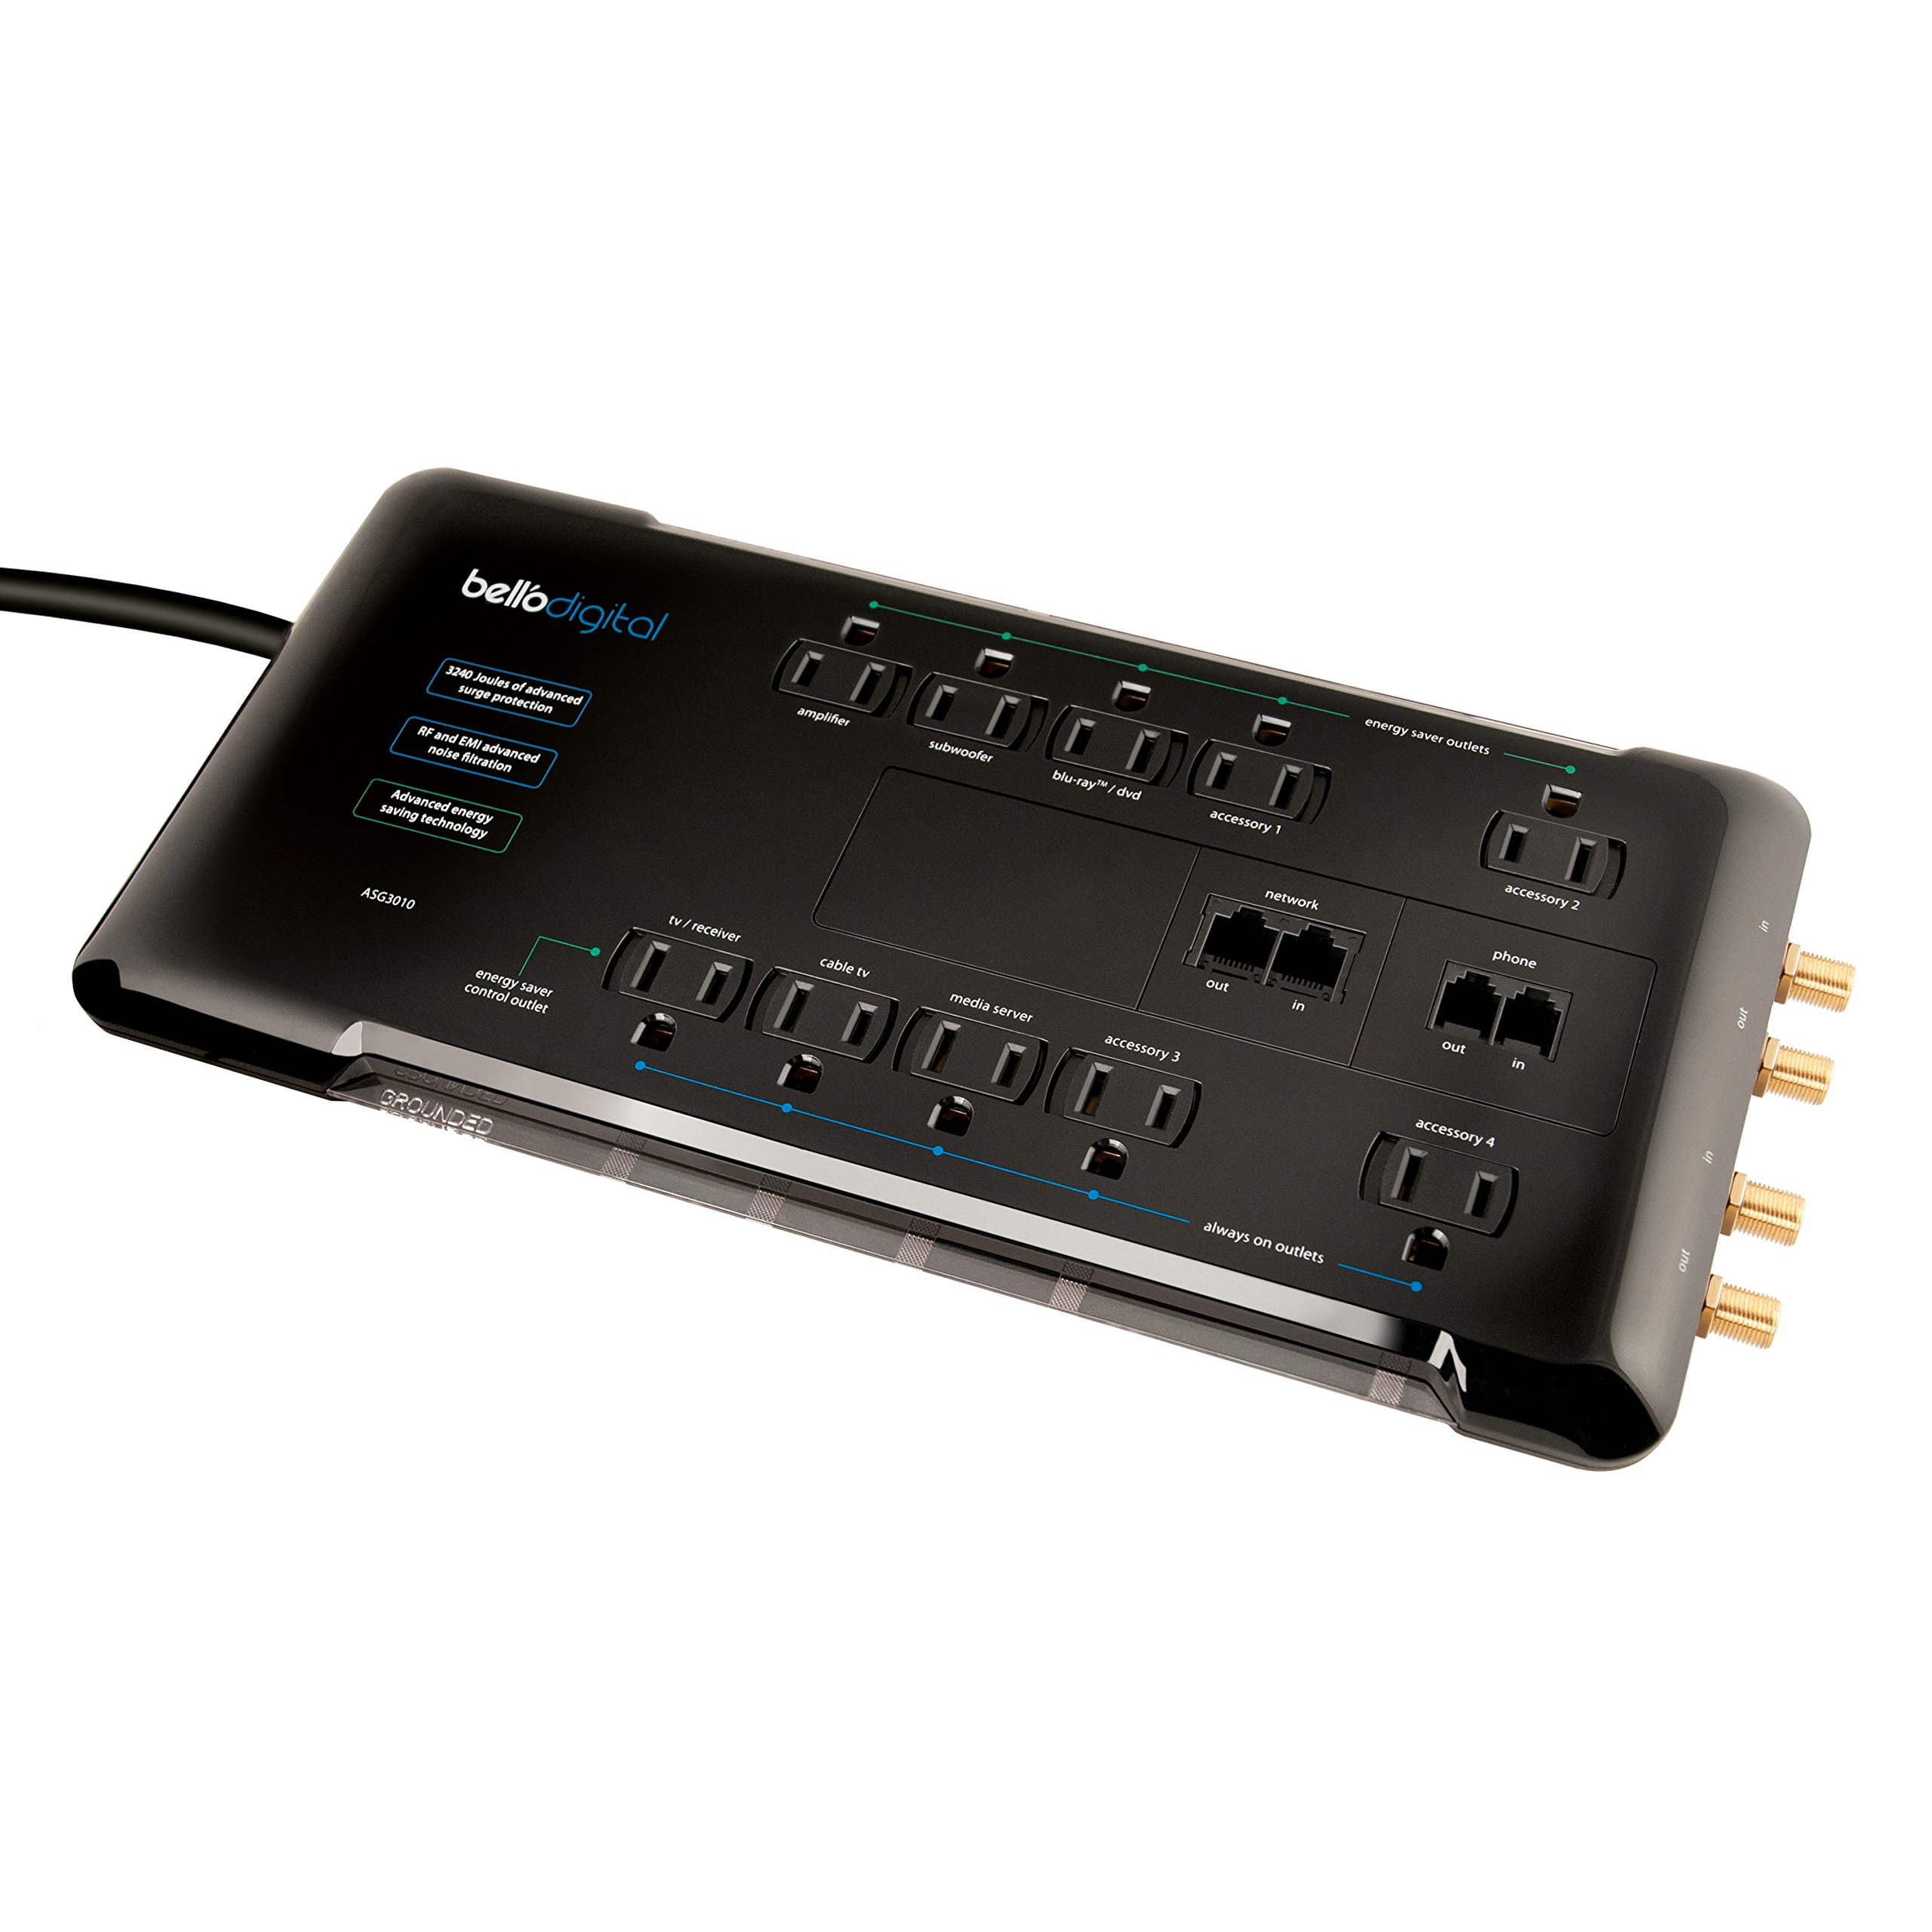 Bell'O Digital ASG3010 10 Outlet Energy Saving Audio Video Surge Protector with 8 Feet Cord plus Coax, Phone and Network Protection with Labeled Outlets